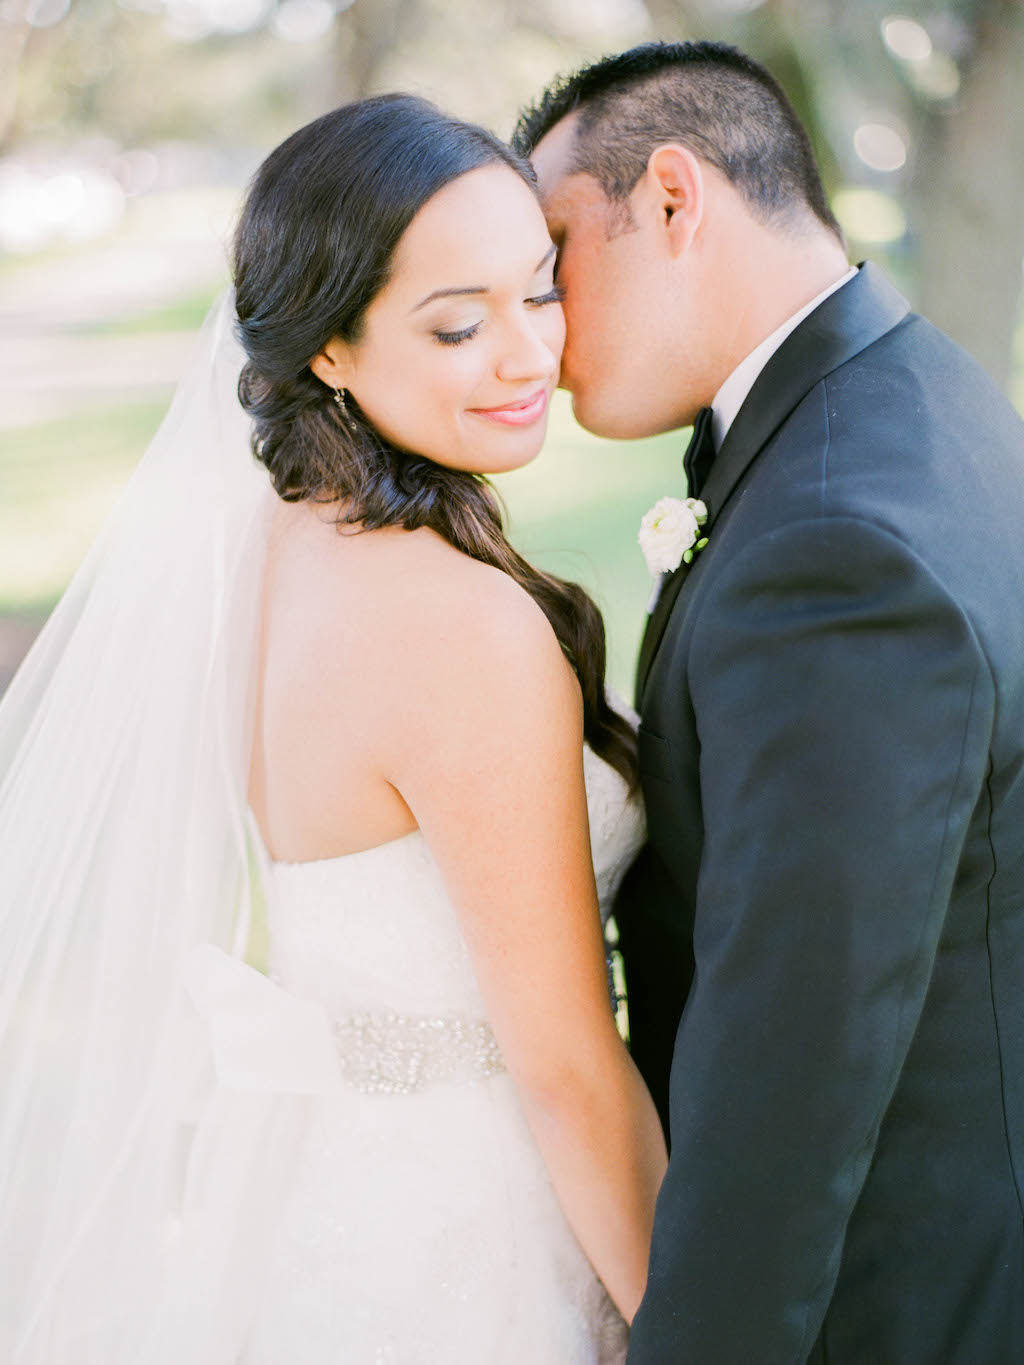 Bride and Groom Wedding Portrait, Groom in Black Tuxedo and White Floral Boutonniere, Bride in Lace Strapless Wedding Dress with Rhinestone Belt and Veil | Tampa Bay Wedding Hair Michele Renee The Studio | St. Petersburg Makeup LDM Beauty Group | Lindsay Does Makeup